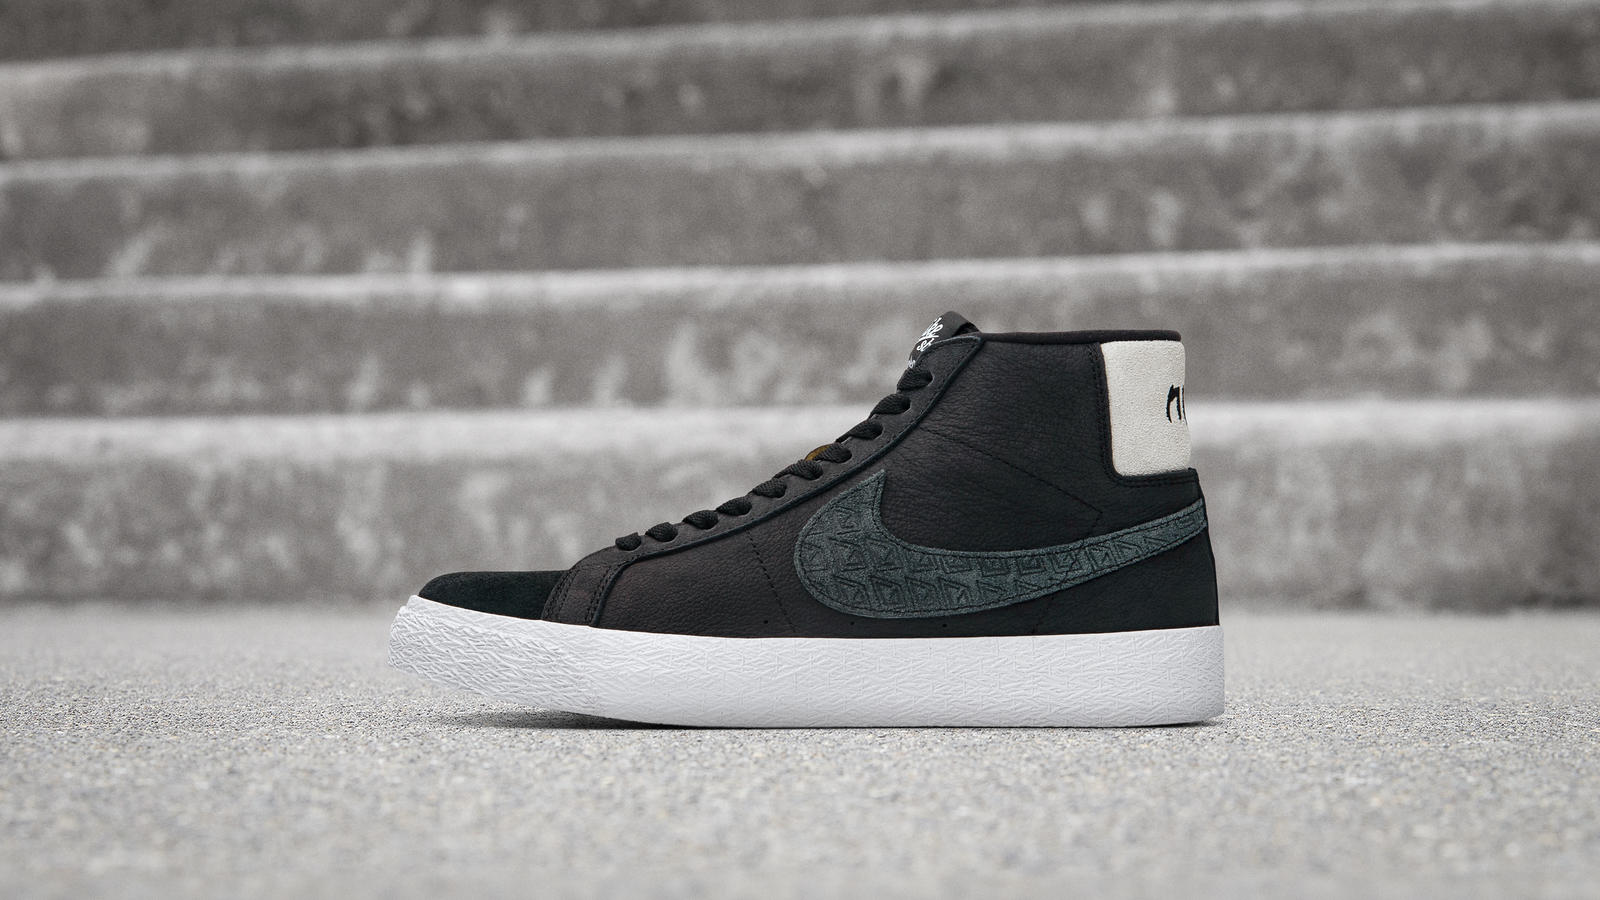 Nike SB Zoom Blazer Mid Gnarhunters Official Images and Release Date ...